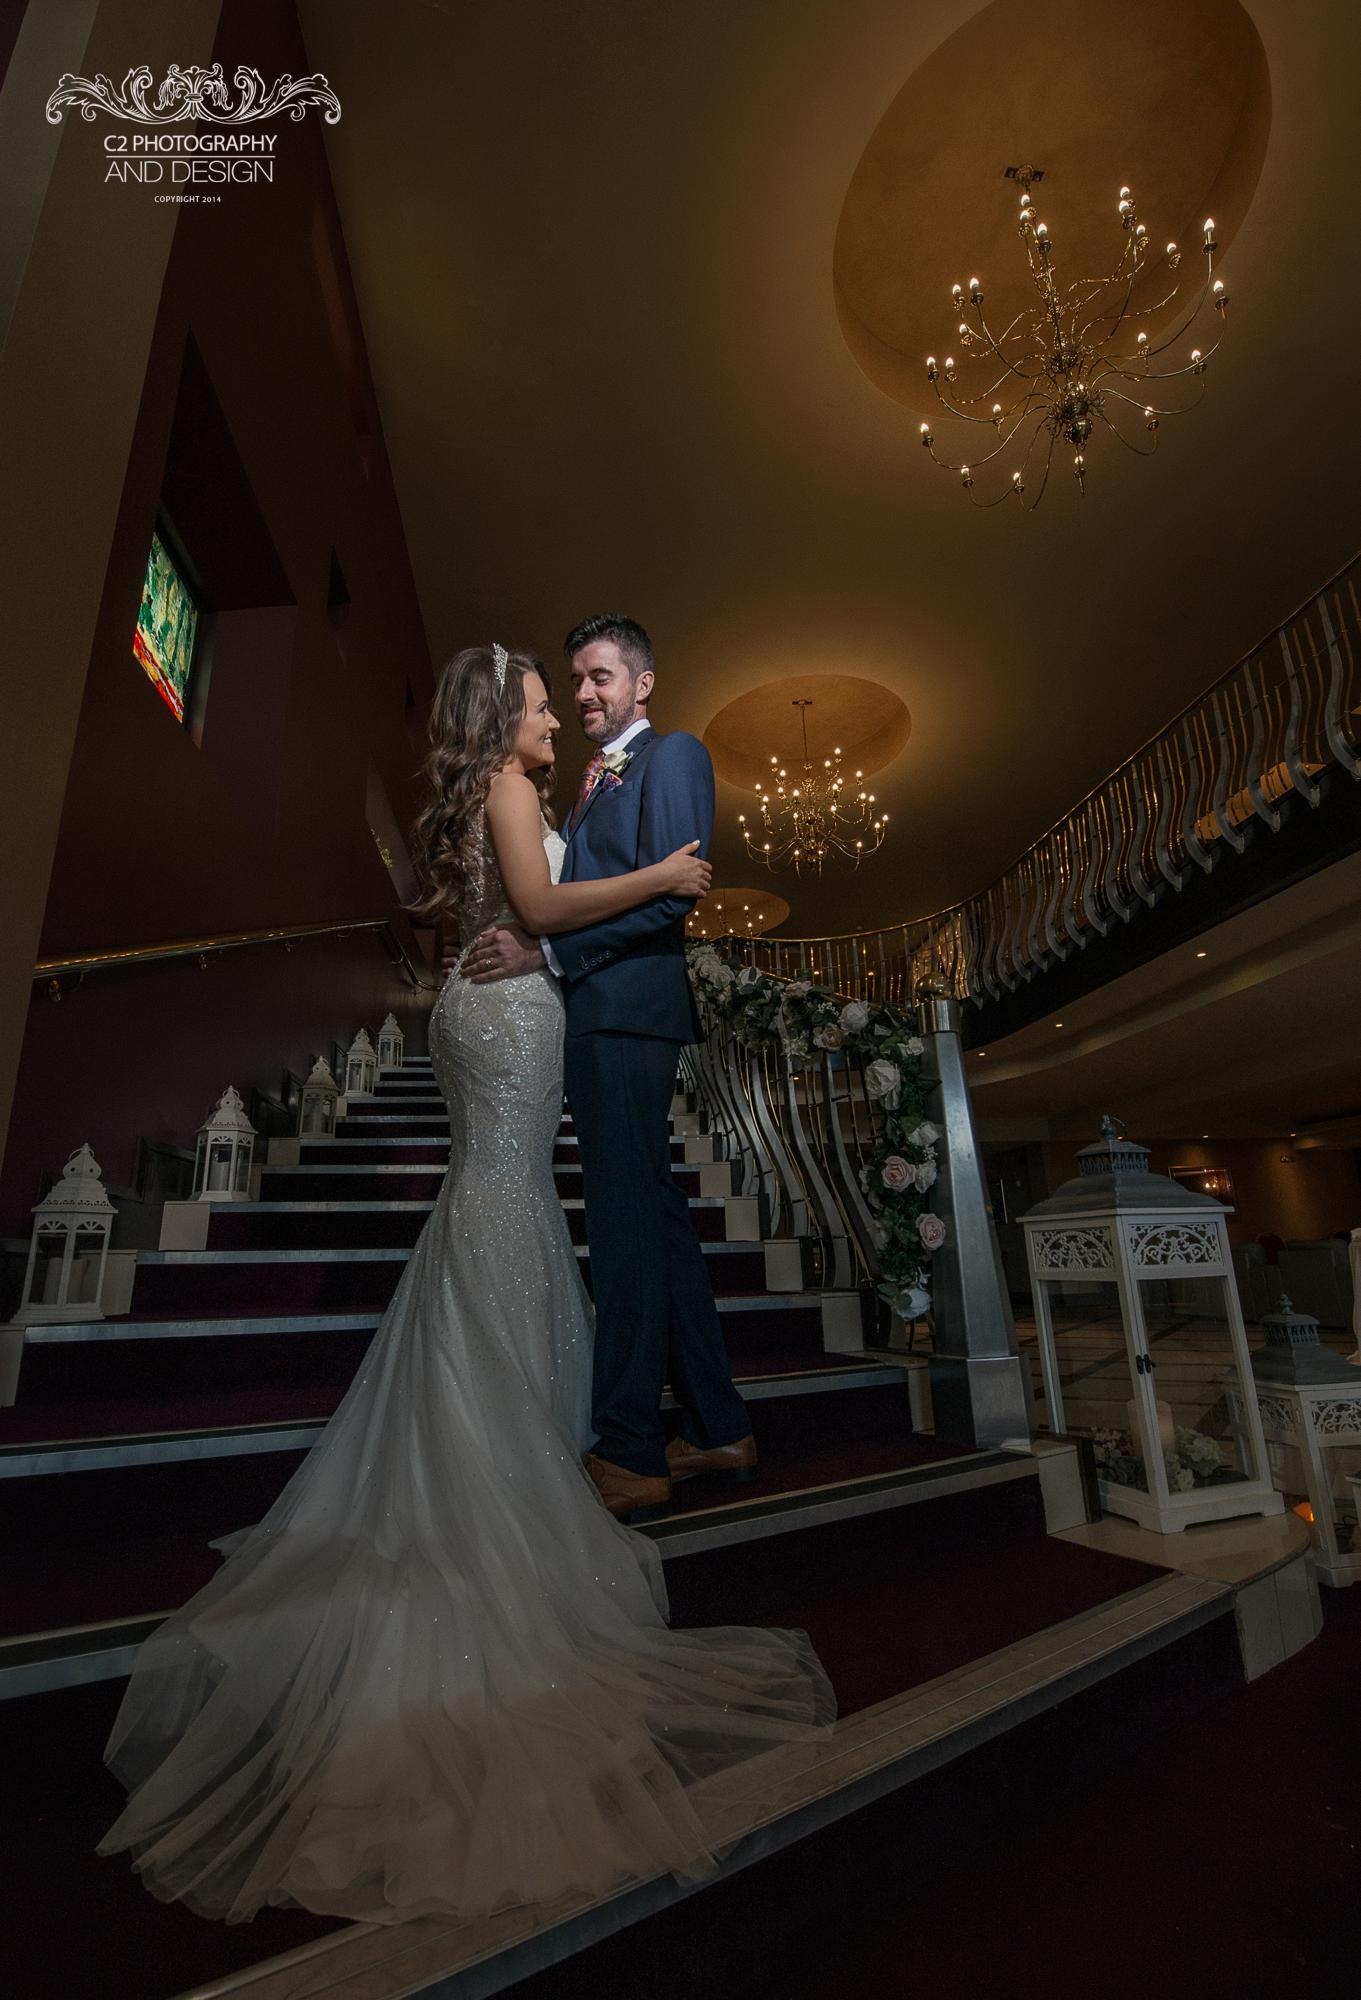 staircase at wedding party Reception location: Jacksons Hotel, Ballybofey, co Donegal